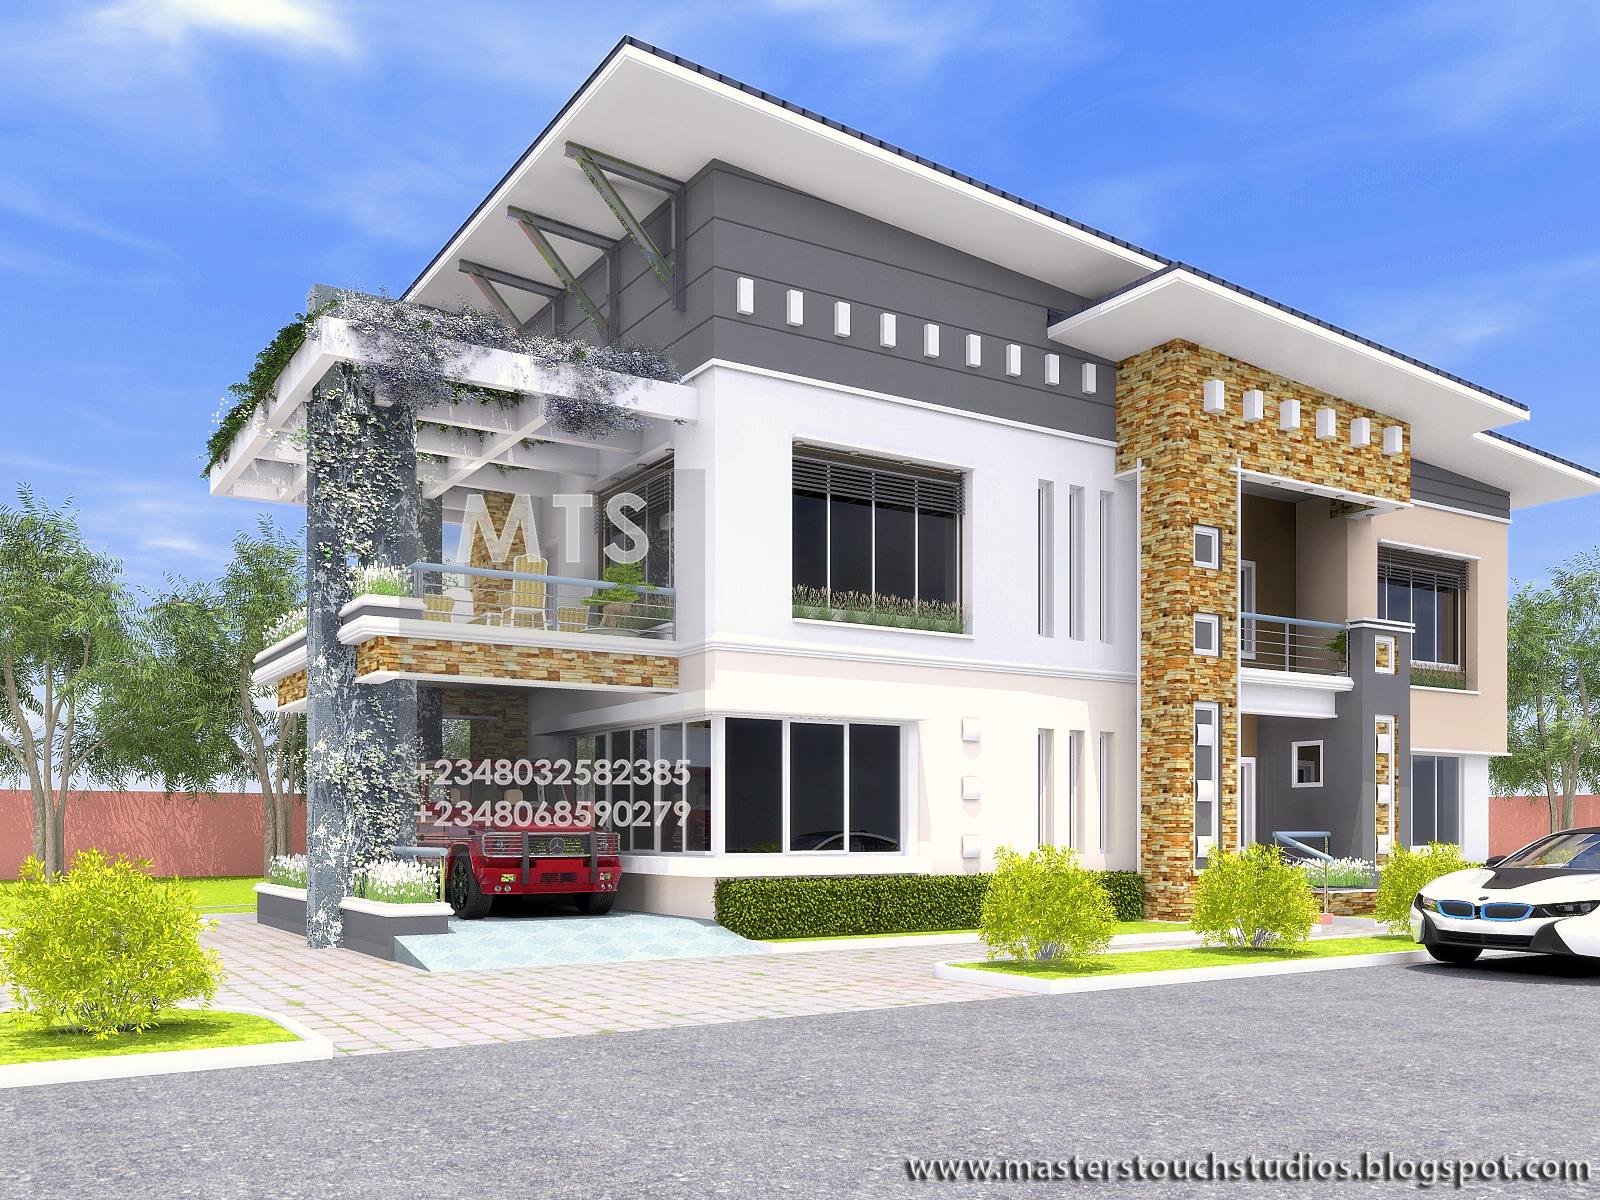 Engr eddy 6 bedroom duplex residential homes and public for Duplex bed